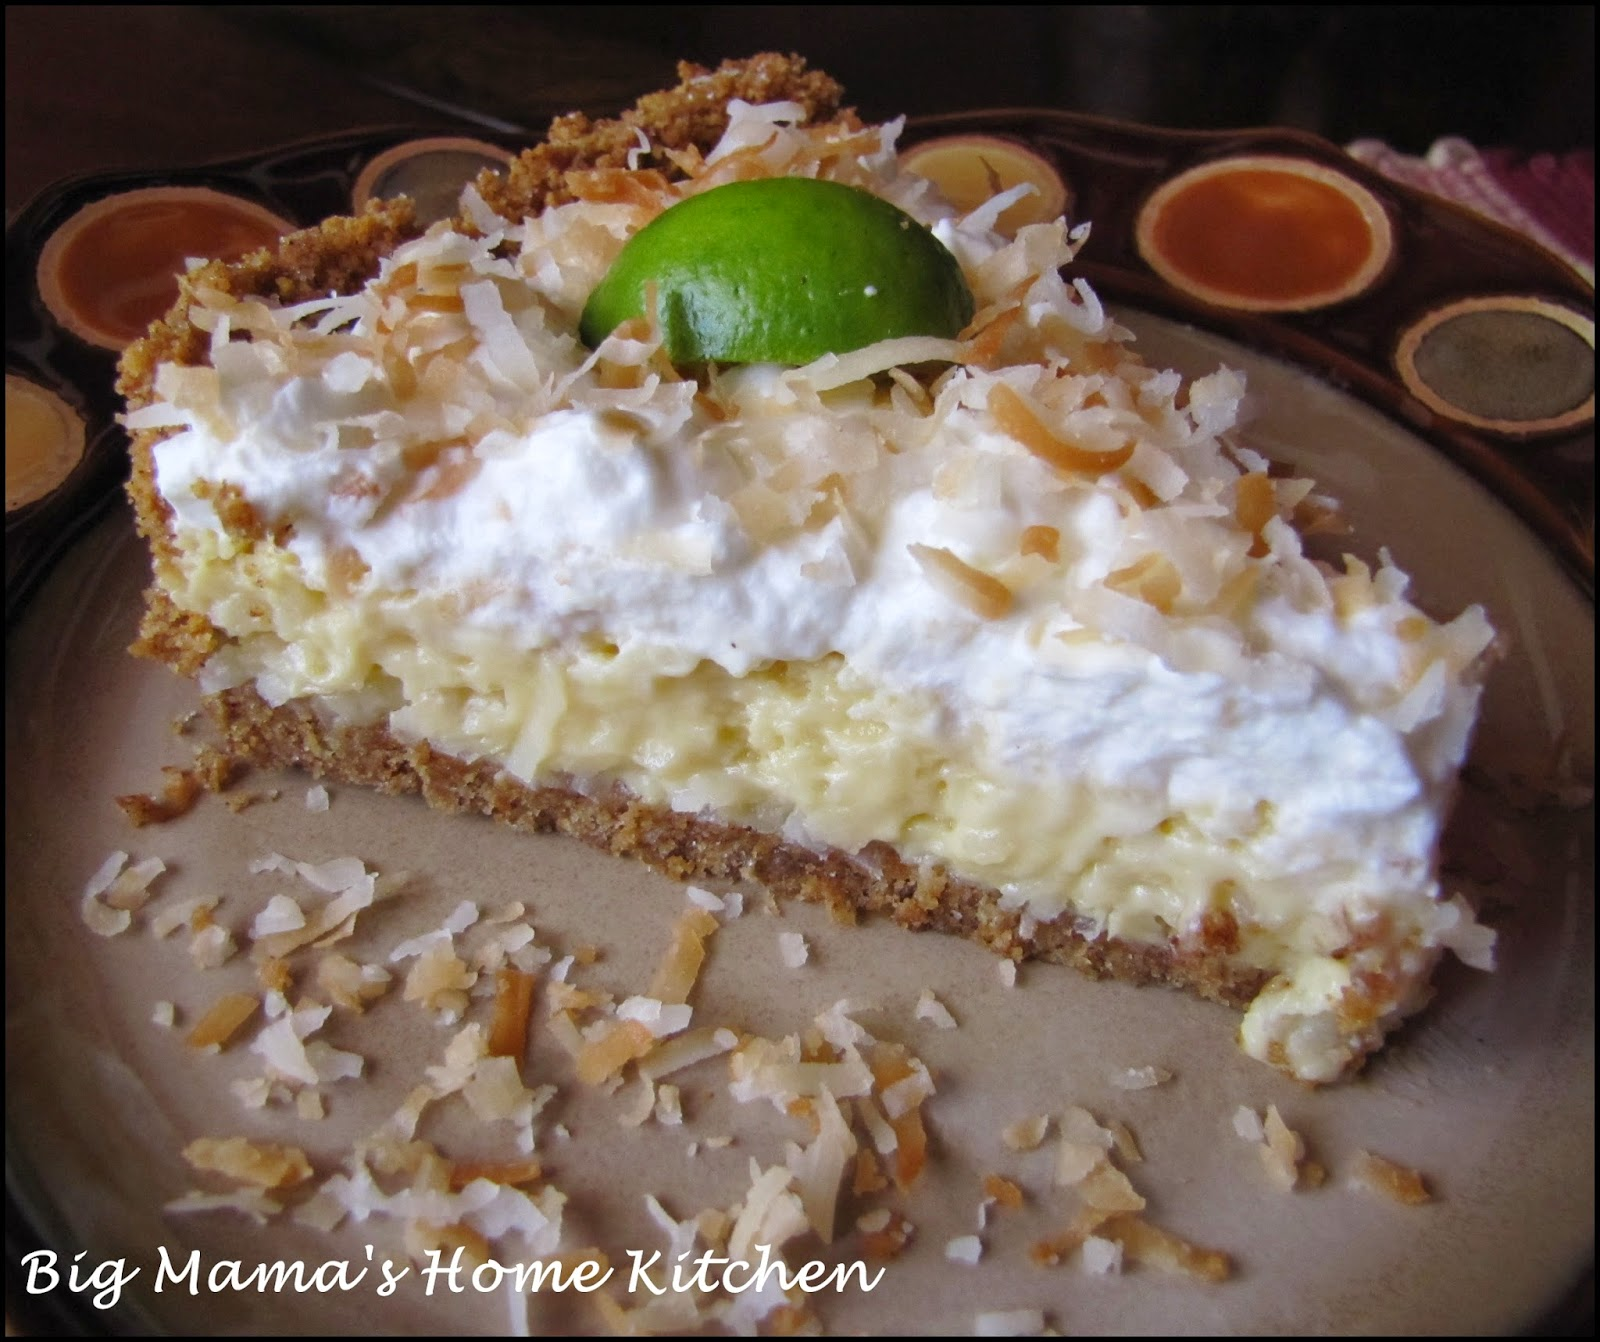 Big Mama's Home Kitchen: Key Lime Coconut Pie